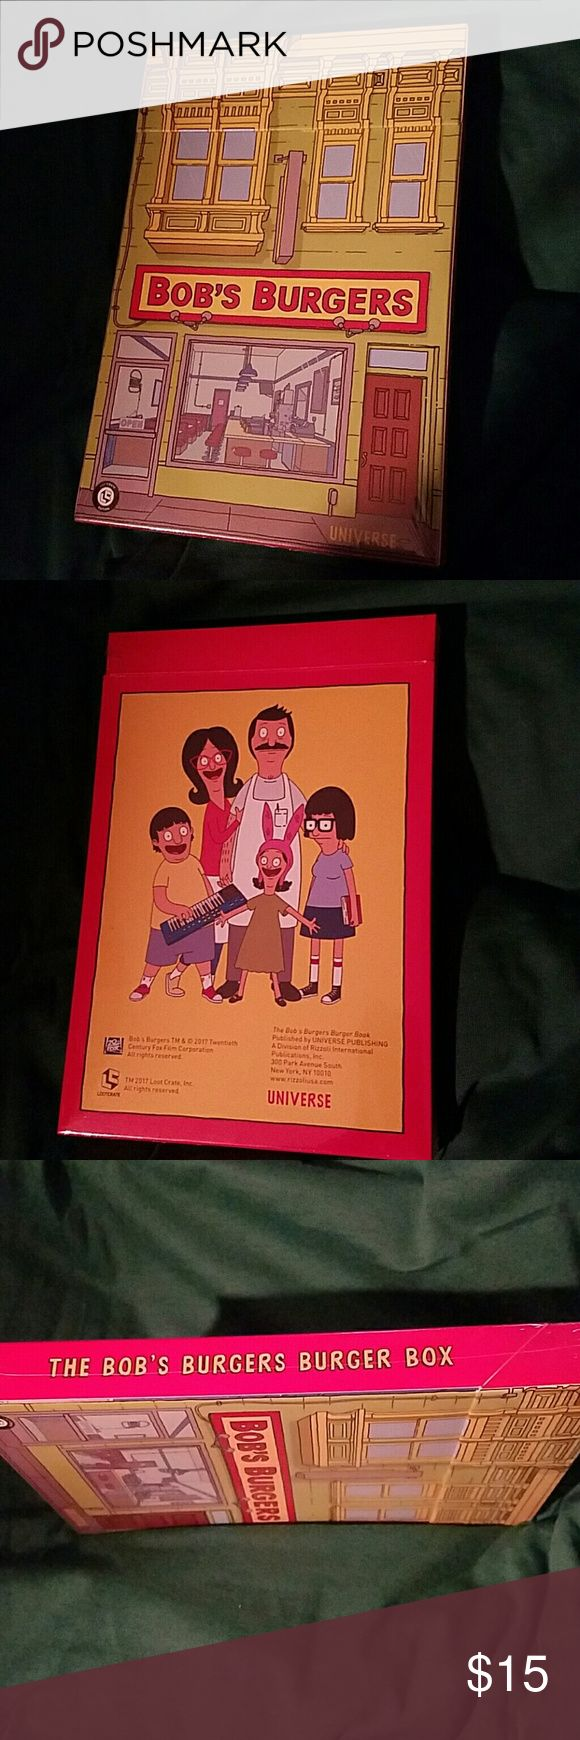 """The Bob's Burgers Burger Box BRAND-NEW One of our favorite parts of Bob's Burgers are the many """"Burgers of the Day"""" specials spiced with delicious puns. This is 25 hand-selected recipes (including vegetarian options) from the Bob's Burgers Cookbook! Printed on sturdy 5 ? 7 cards they come in a box designed to look like the restaurant. Penguin Random House Other"""